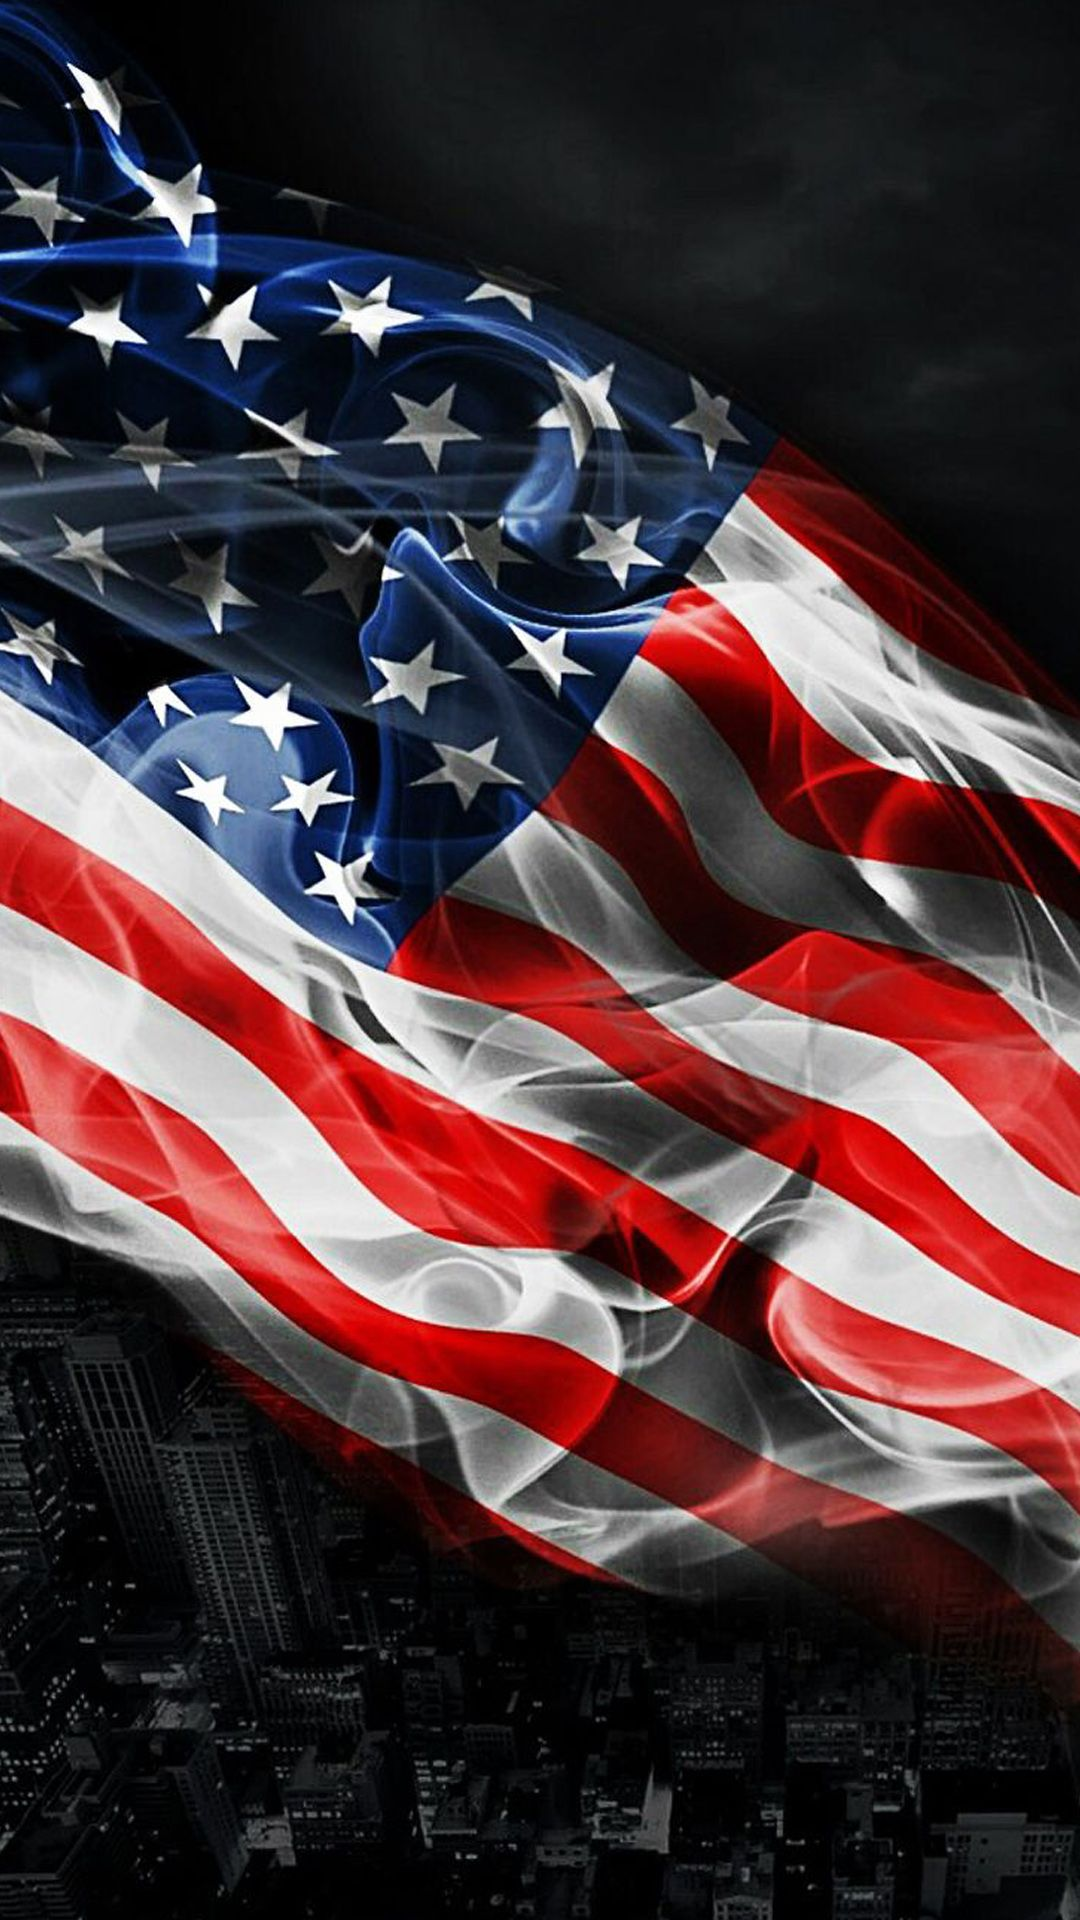 American Flag Screensavers And Wallpaper American Flag Wallpaper America Flag Wallpaper Usa Flag Wallpaper